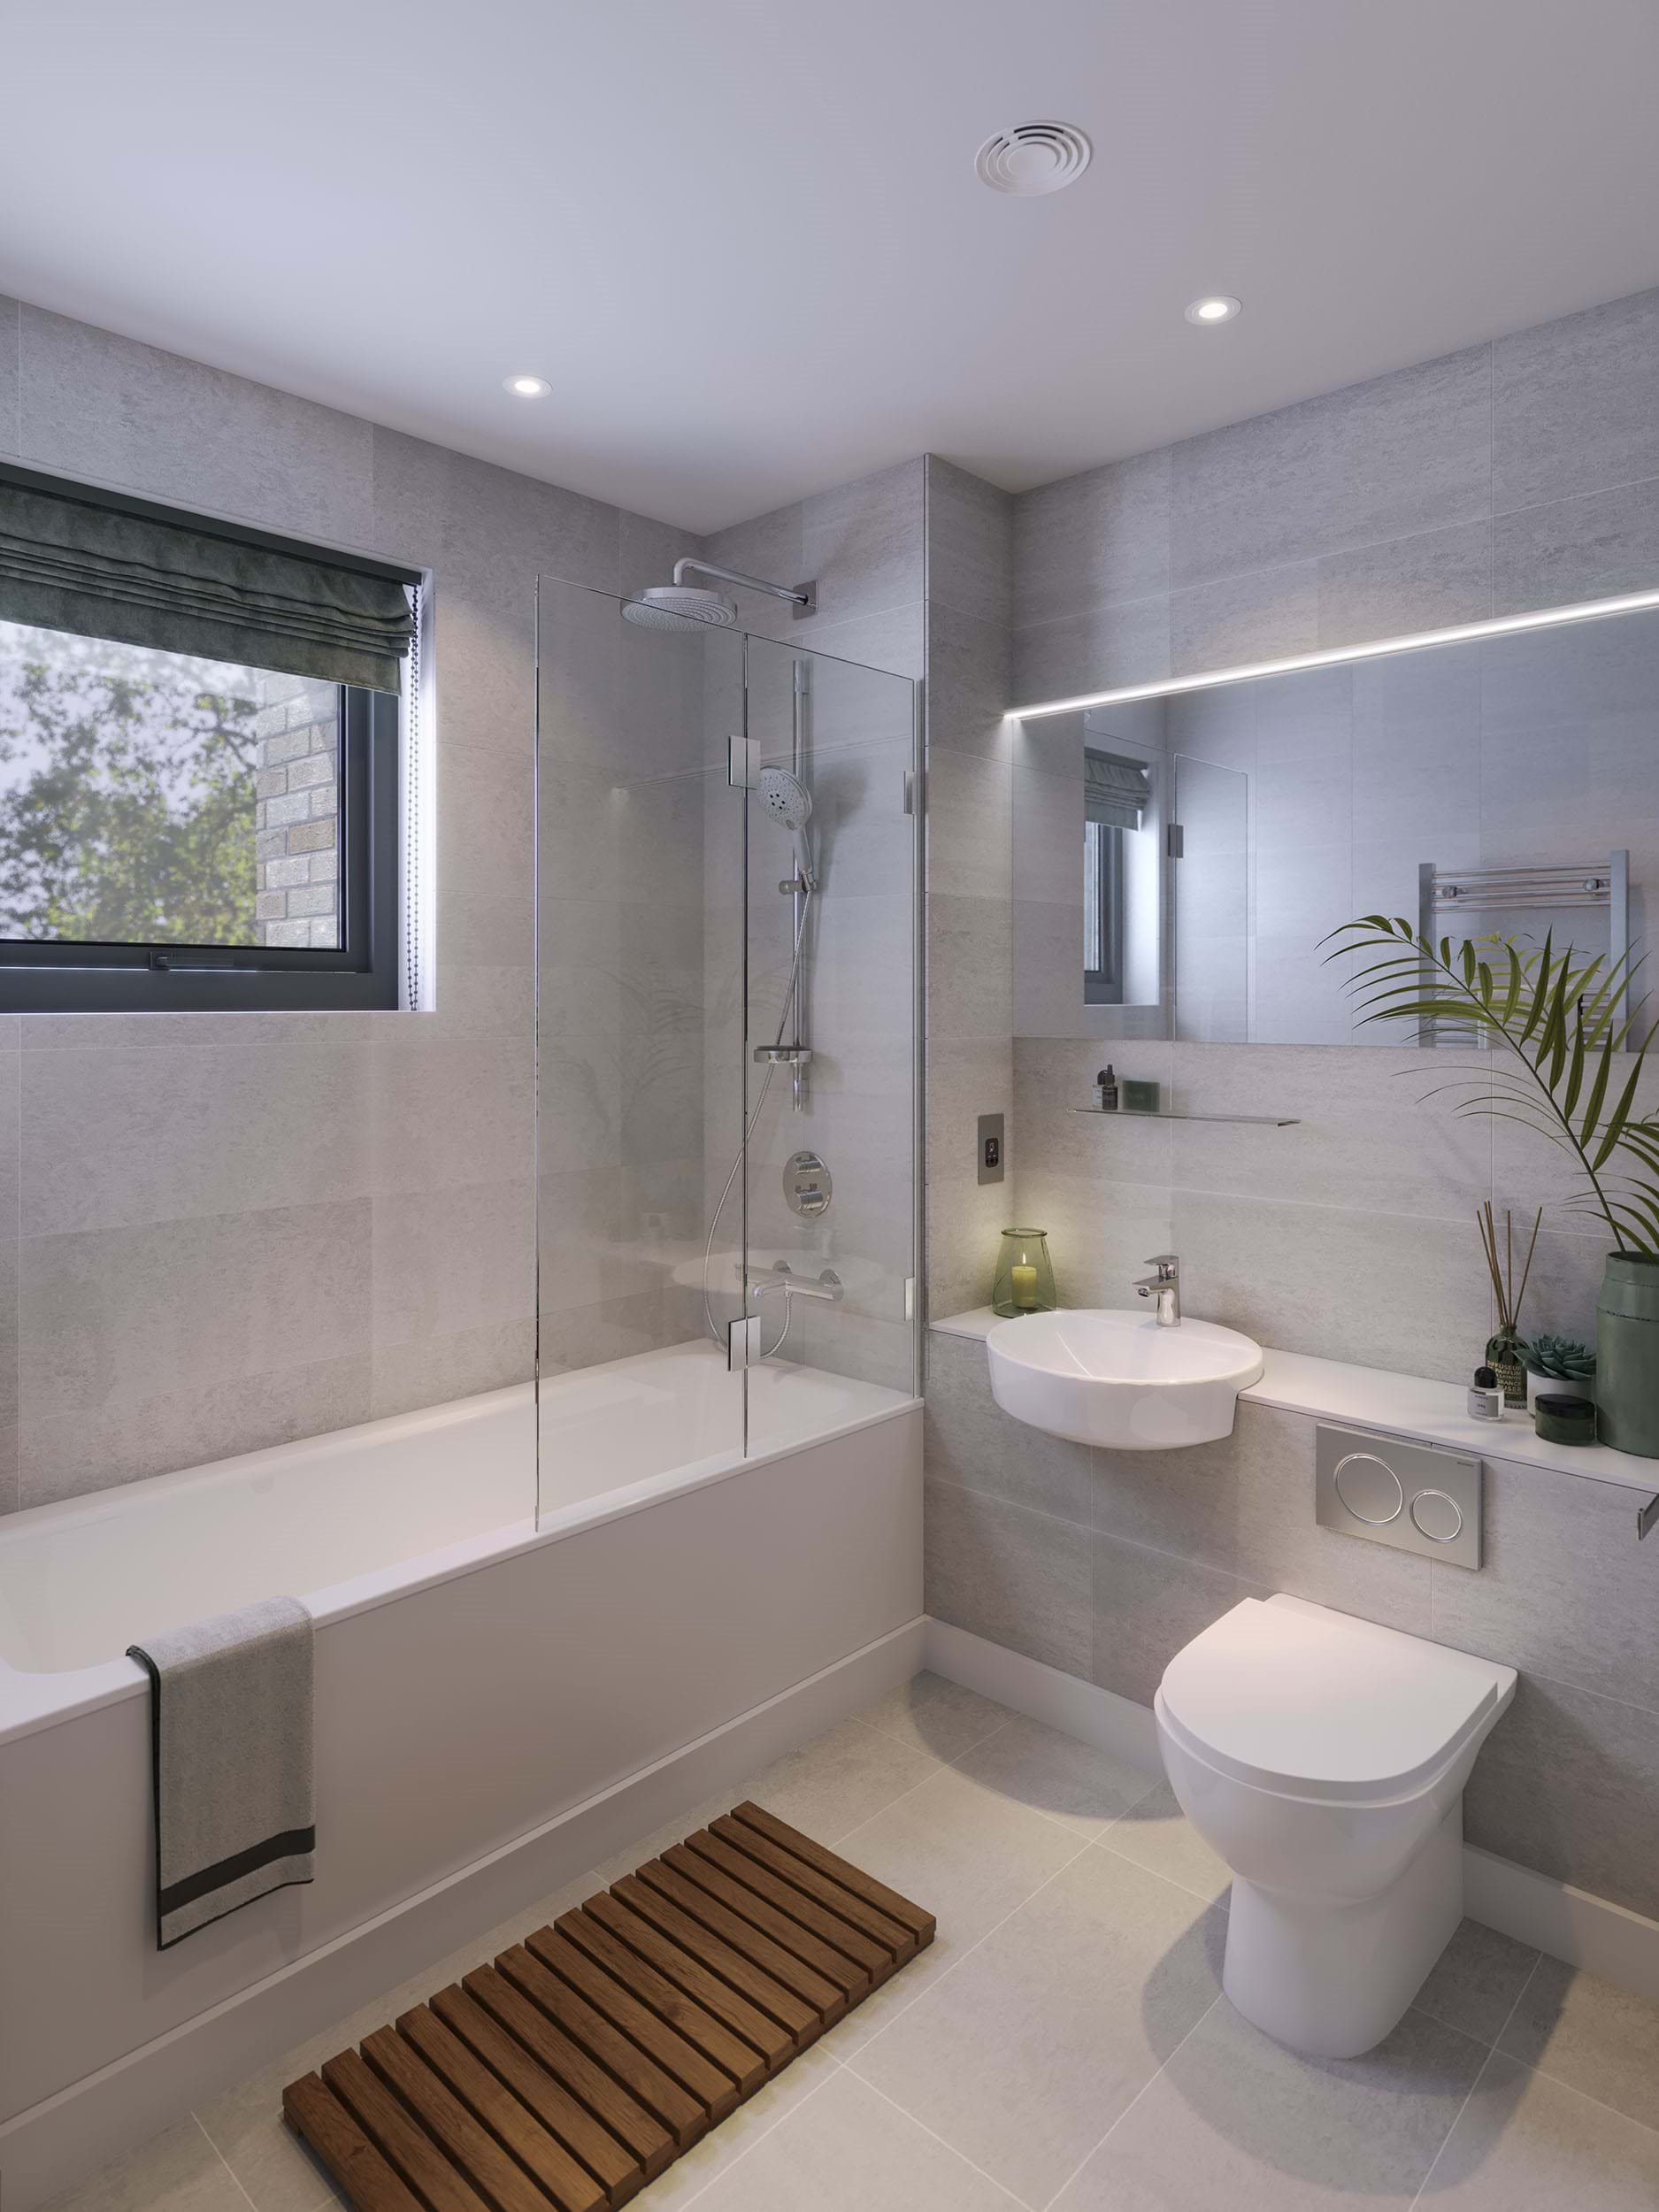 The Pomeroy | Private Sale - Bathroom (CGI)